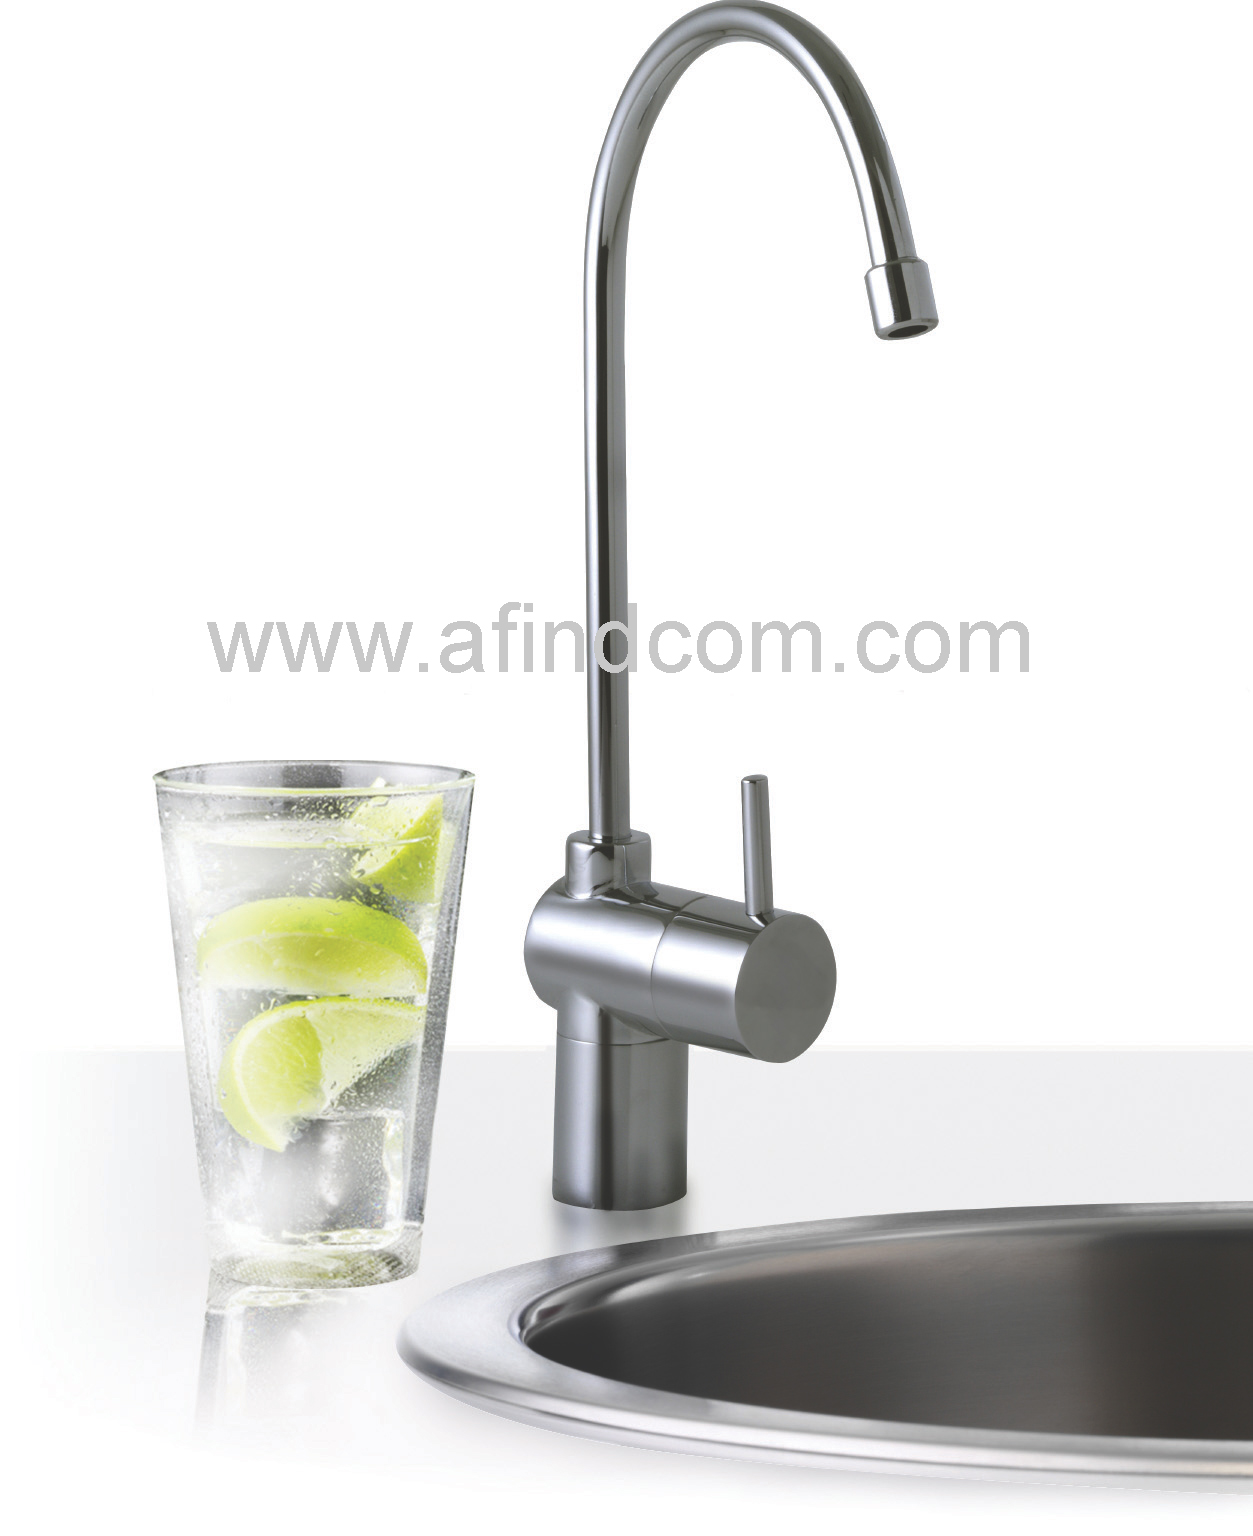 Zip Chilltap For Ice Cold Water Under Counter Water